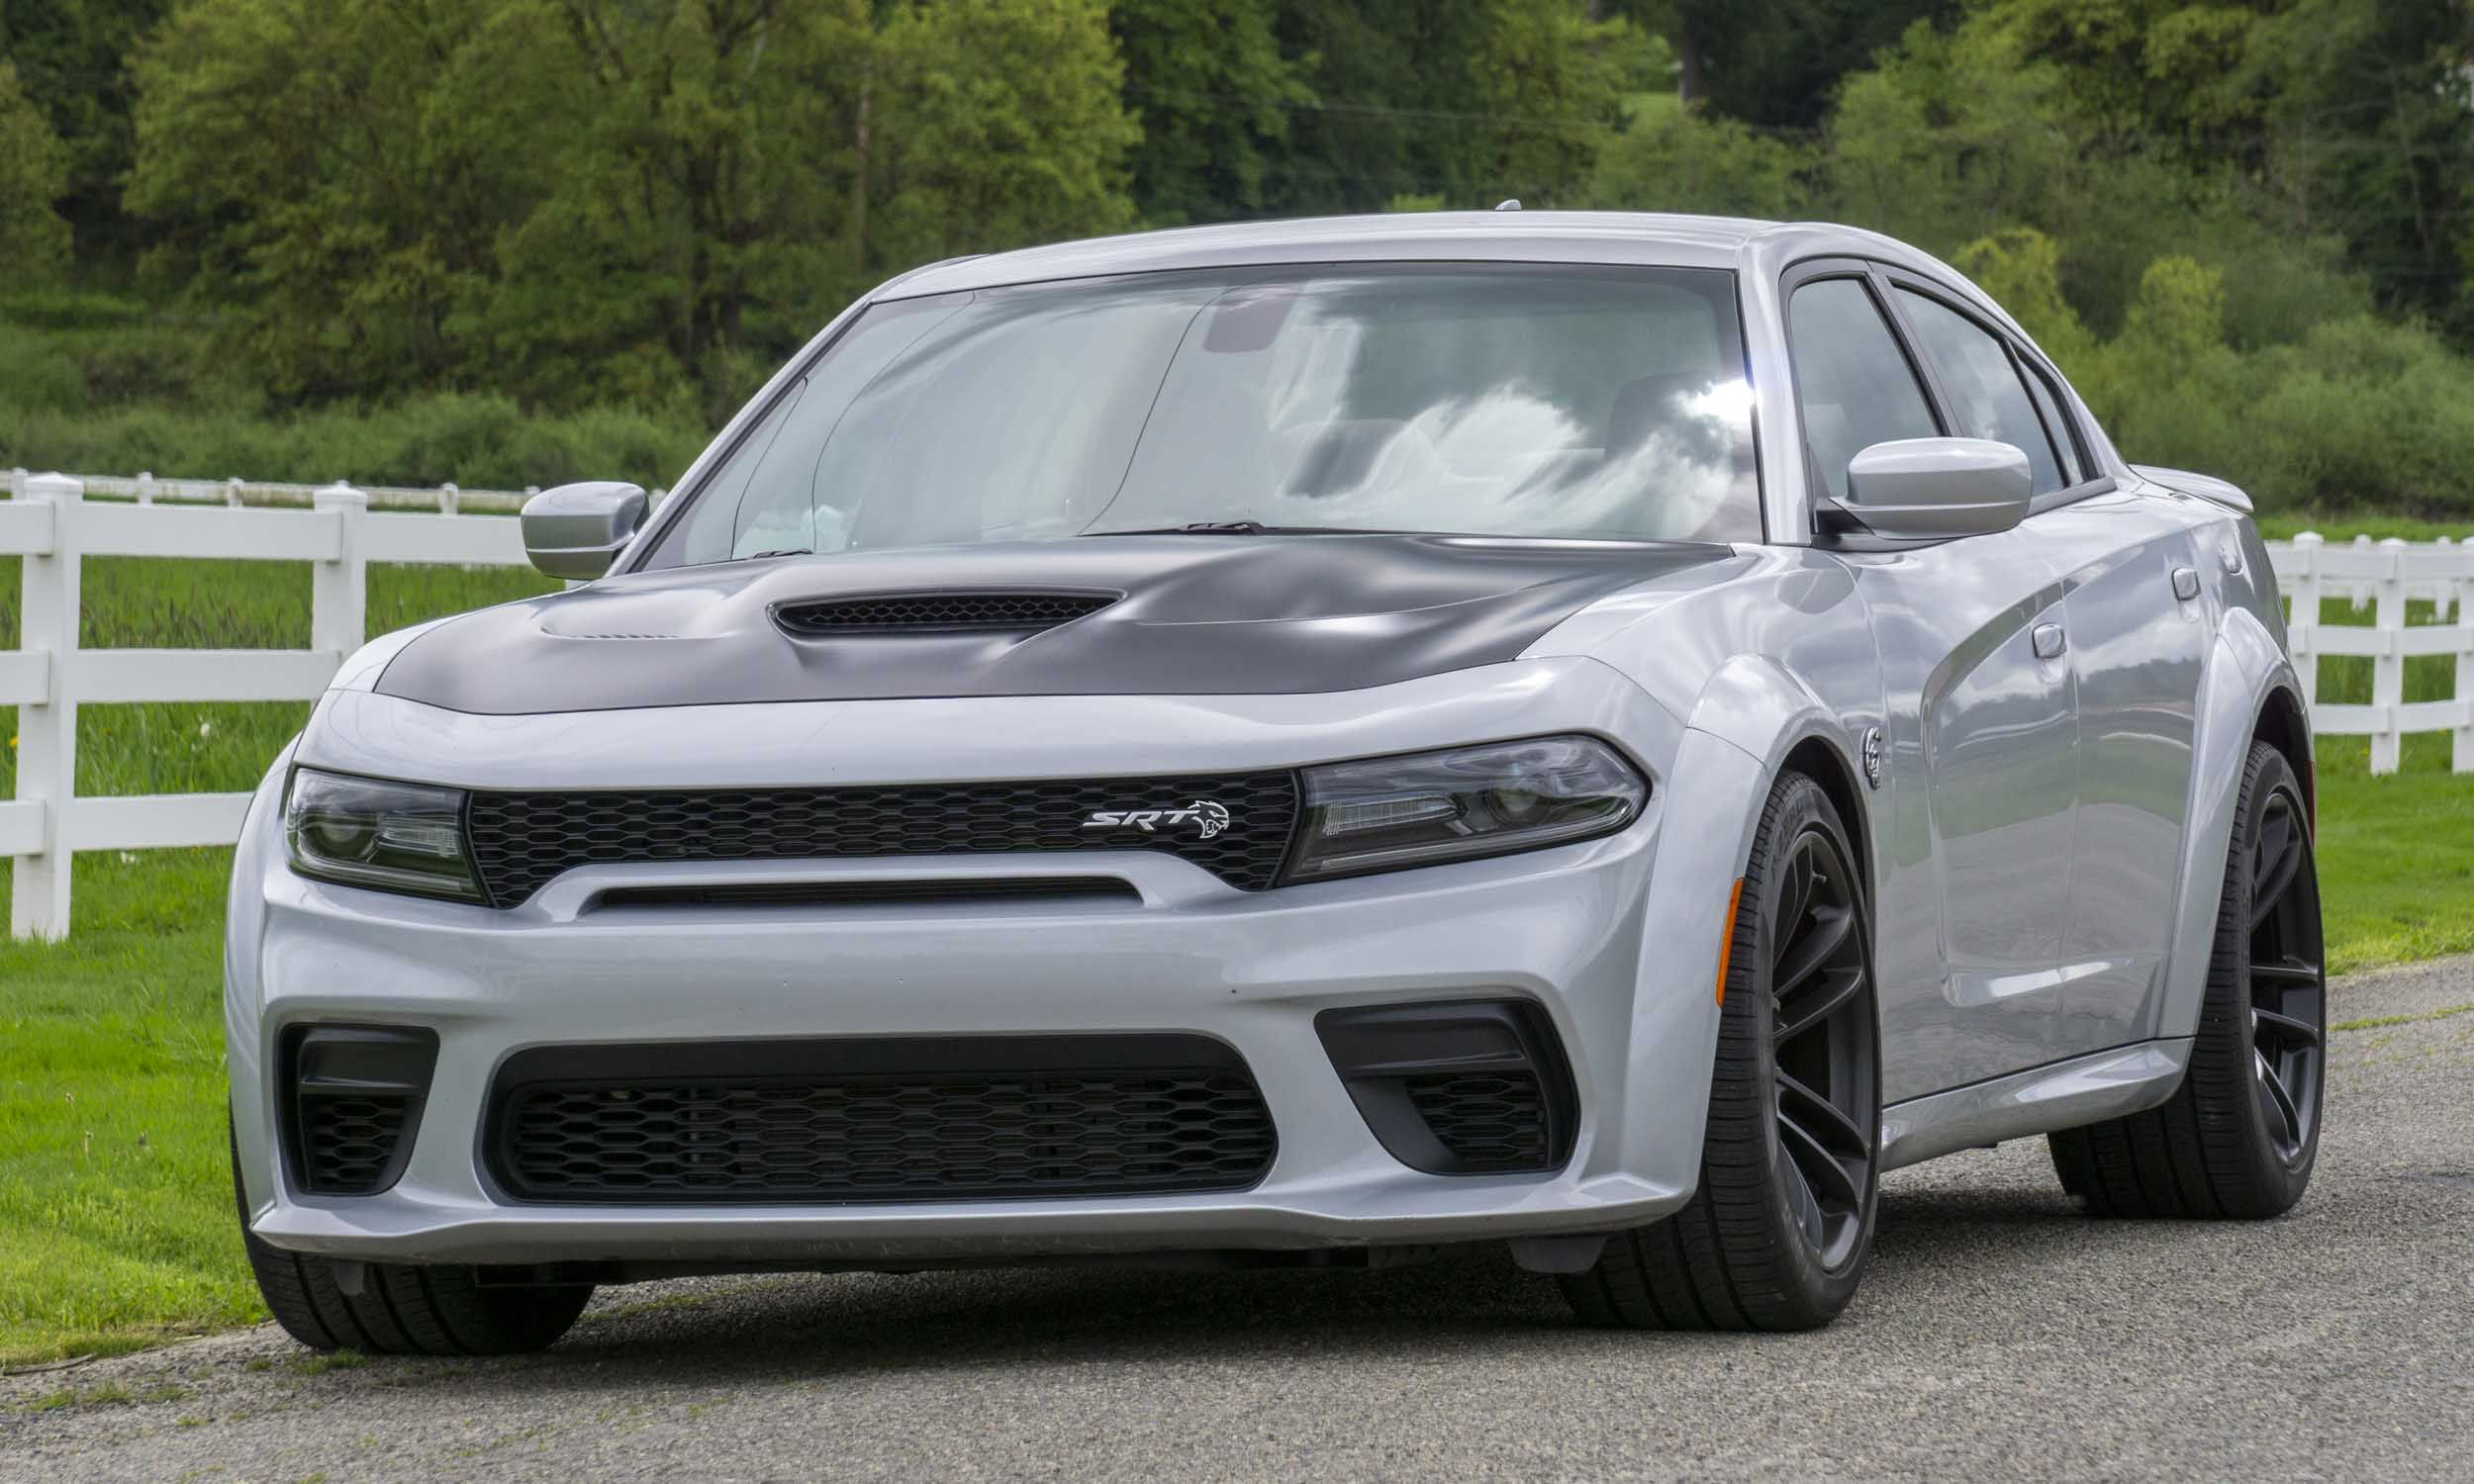 2020 Dodge Charger Srt Hellcat Widebody Review Dodge Charger Hellcat Dodge Charger Srt Charger Srt Hellcat